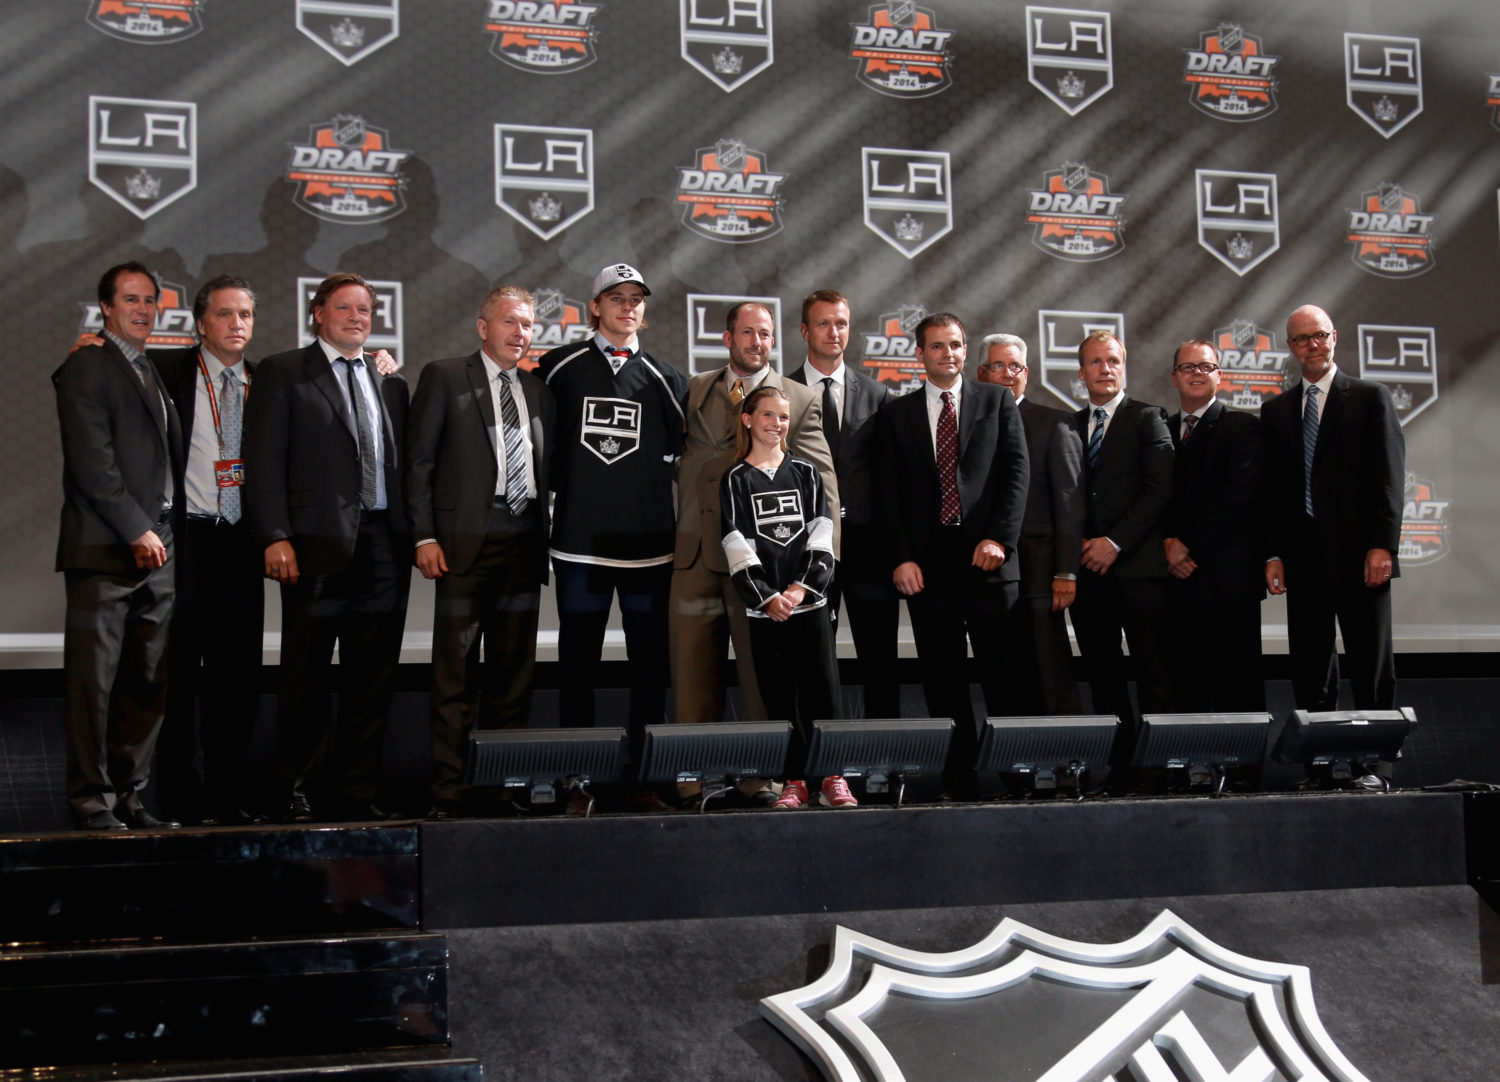 An Inside Look At Kings Director of Amateur Scouting Mark Yannetti & the Scouting Process - LA Kings Insider